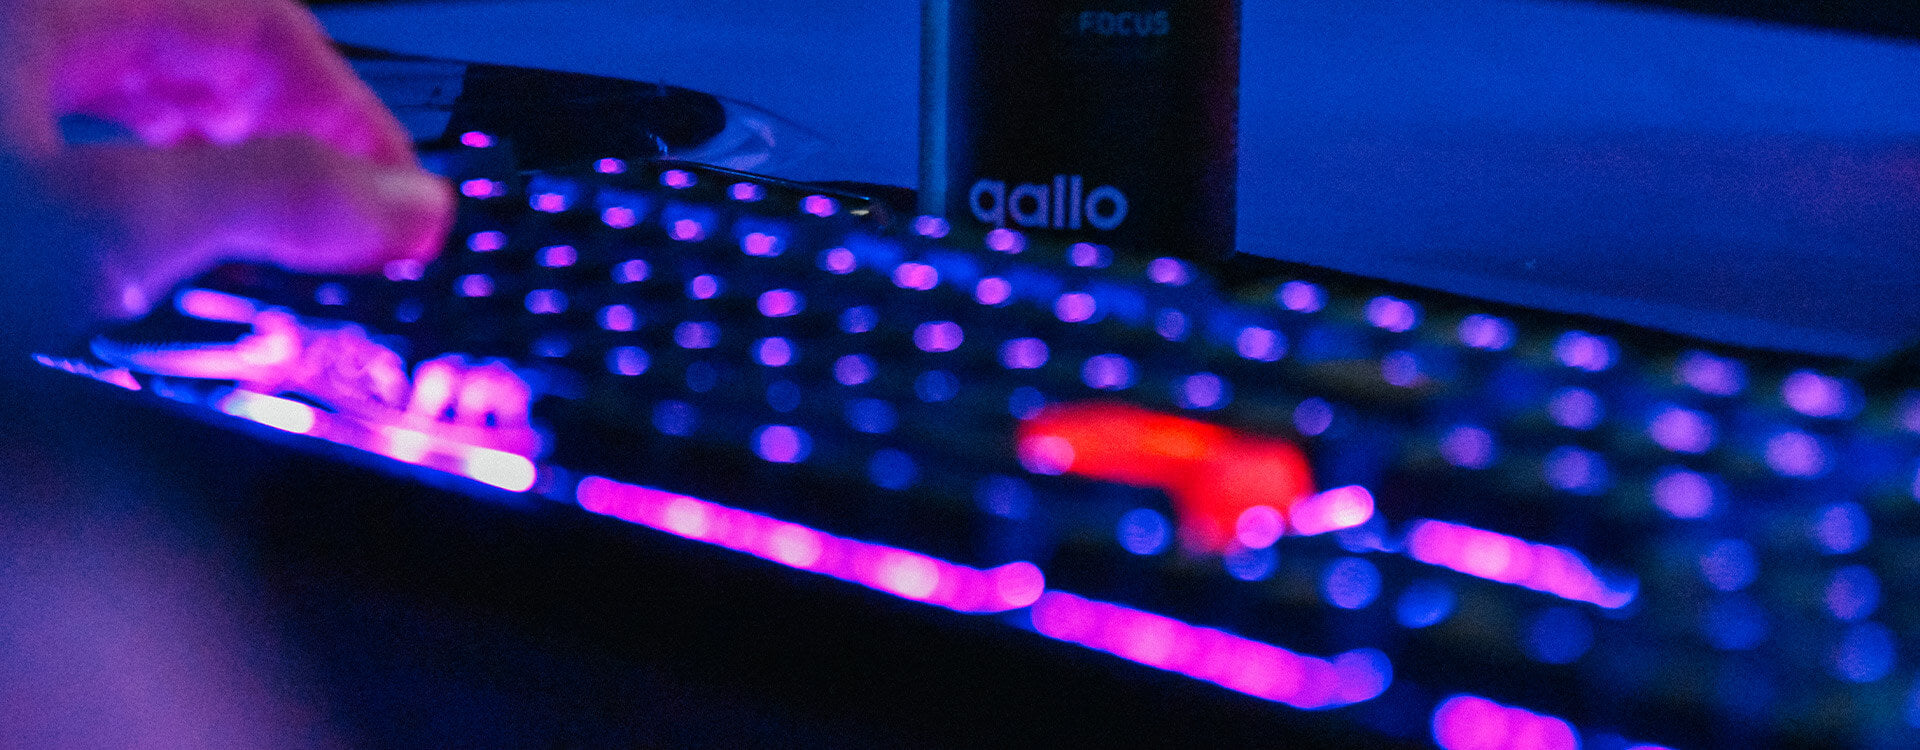 LED Gaming Keyboard With Qallo® QFocus Behind it.